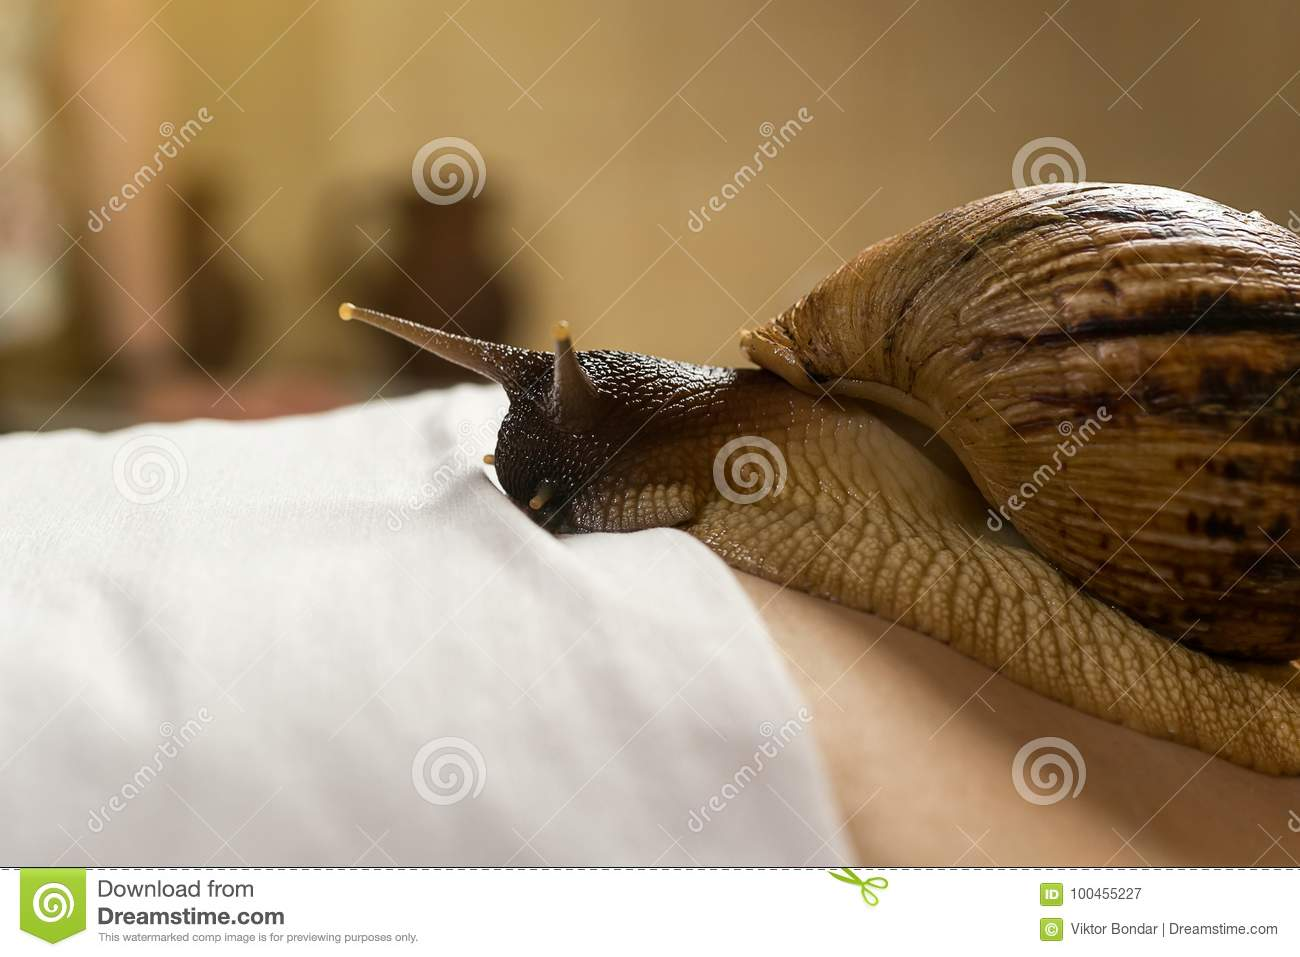 Achatina snails in cosmetology: how to use 10